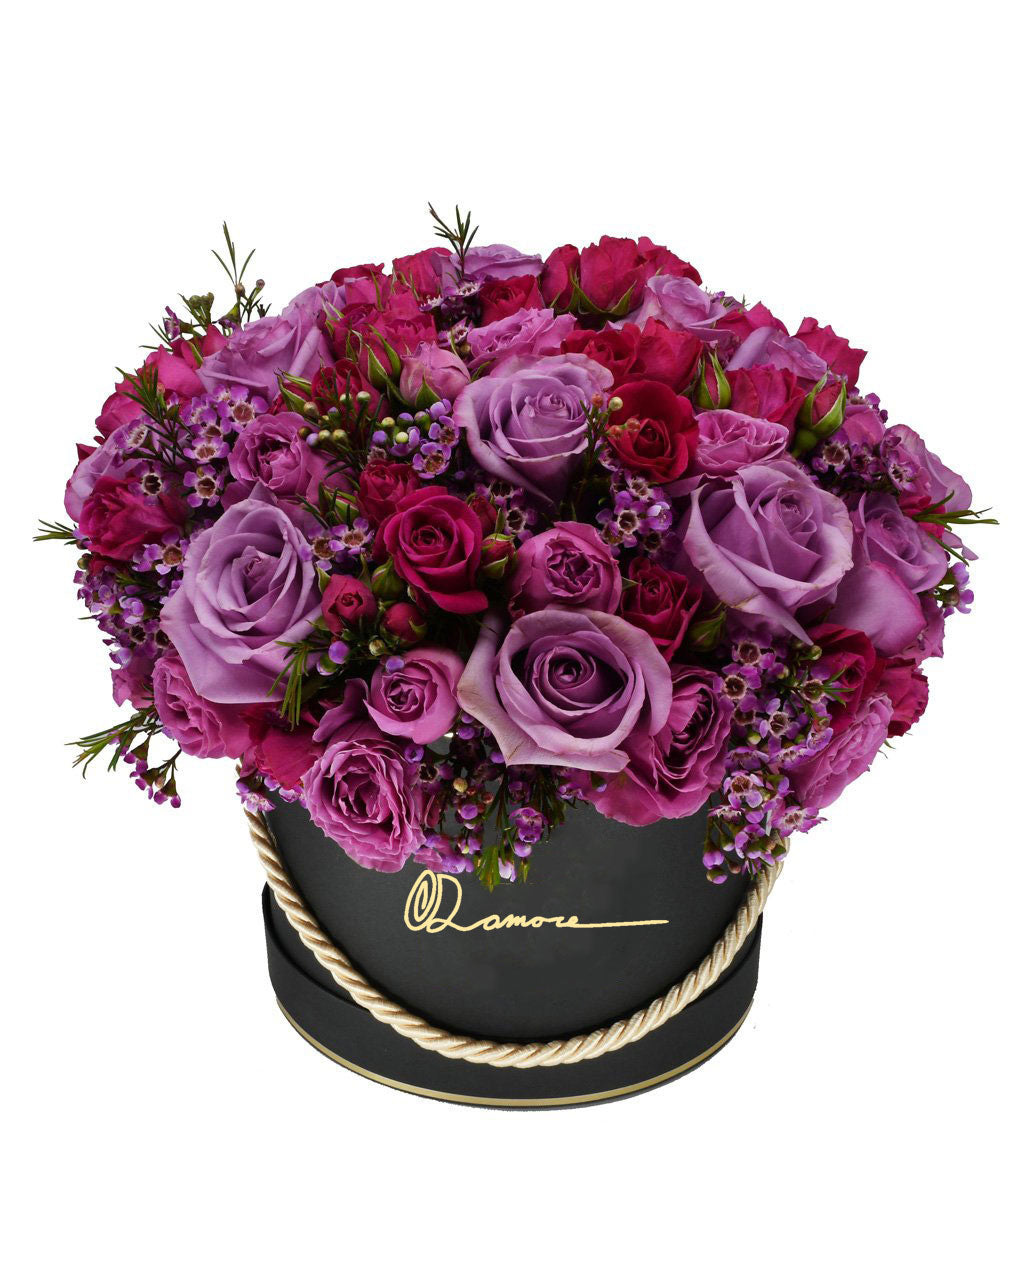 PURPLE BLISS - Fiori d'amore official